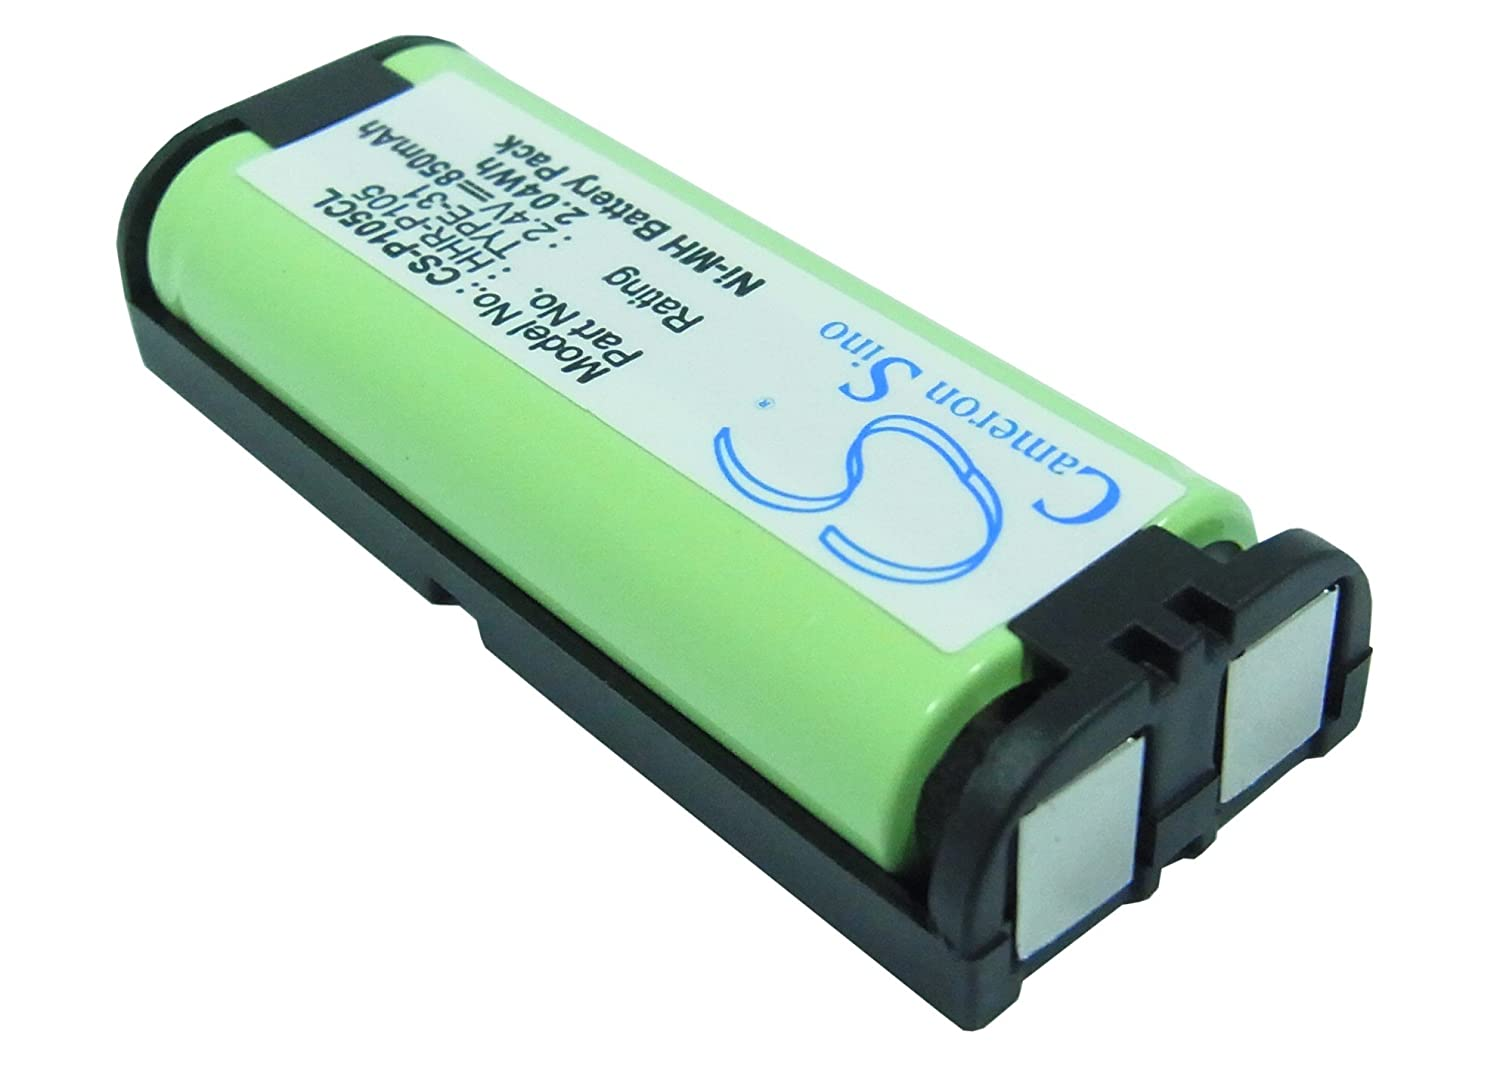 850mAh Battery For Panasonic KX-TG2411, KX-TG2420, KX-TG2421, KX-TG2422, CPH-508 VINTRONS Digi-Tech CS-P105CL